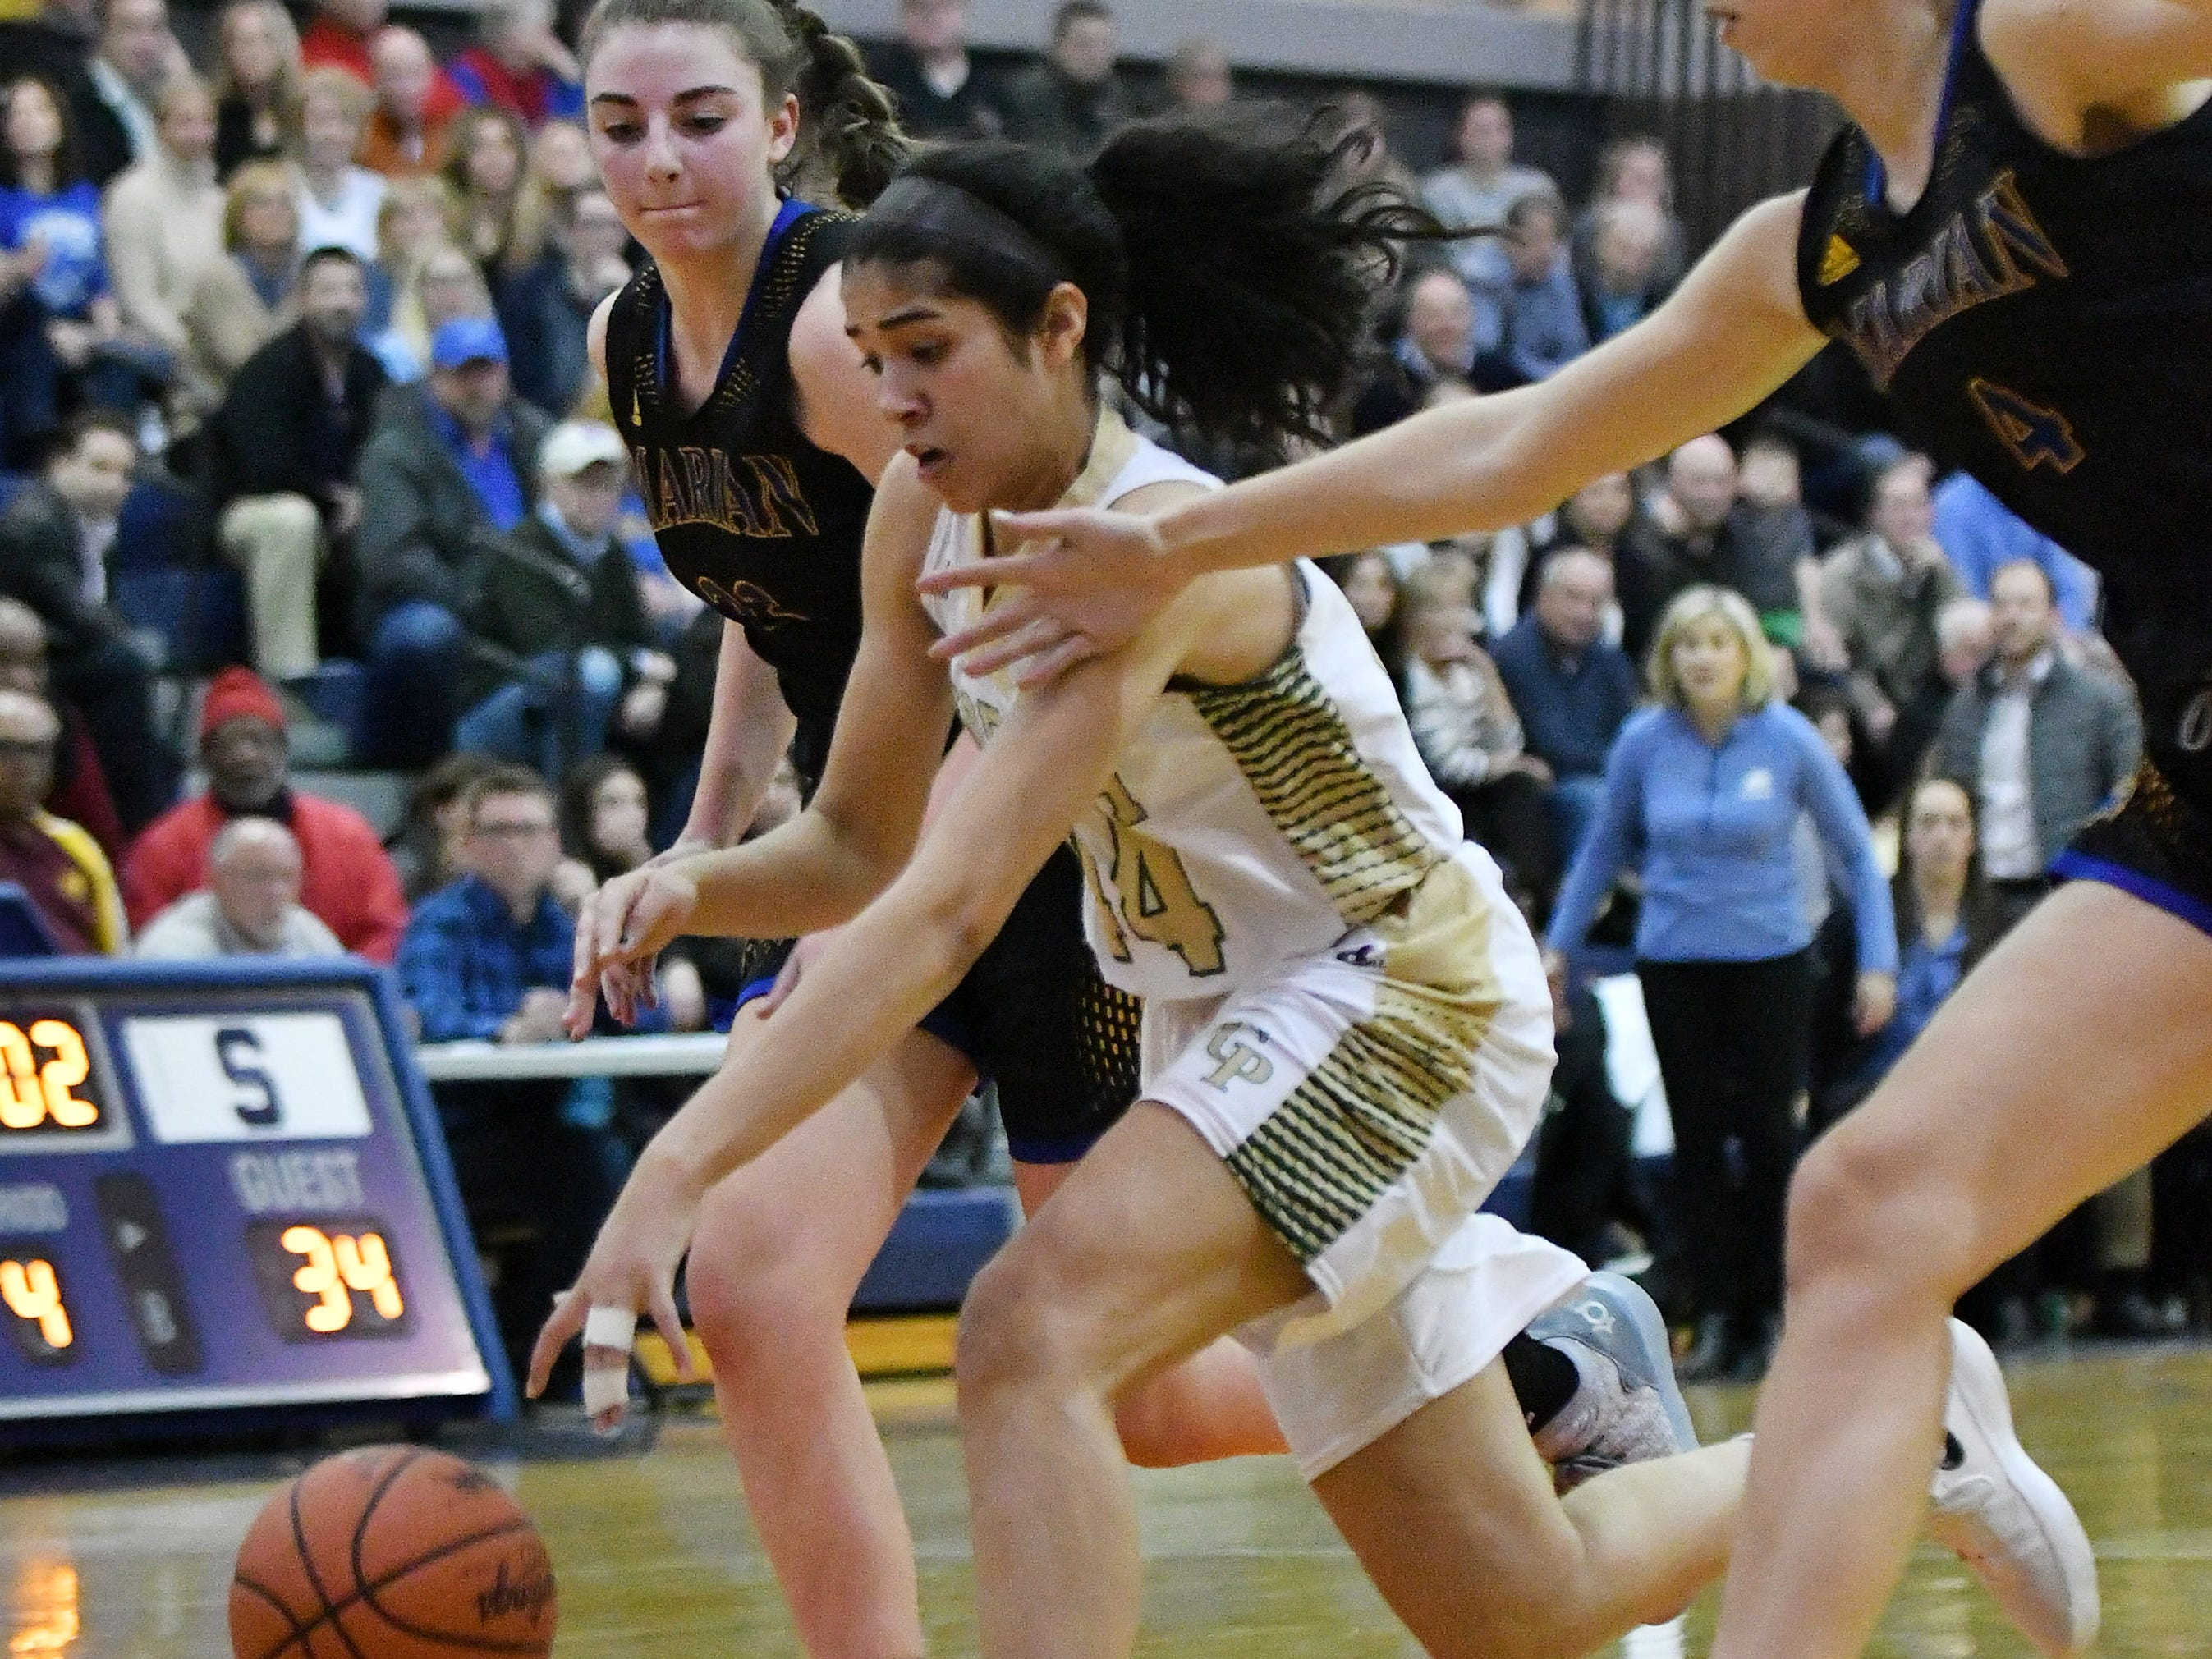 Grosse Pointe North's Christina Braker, center, dribbles through Marian's Lauren Licari, left, and Sara Sylvester in the second half.